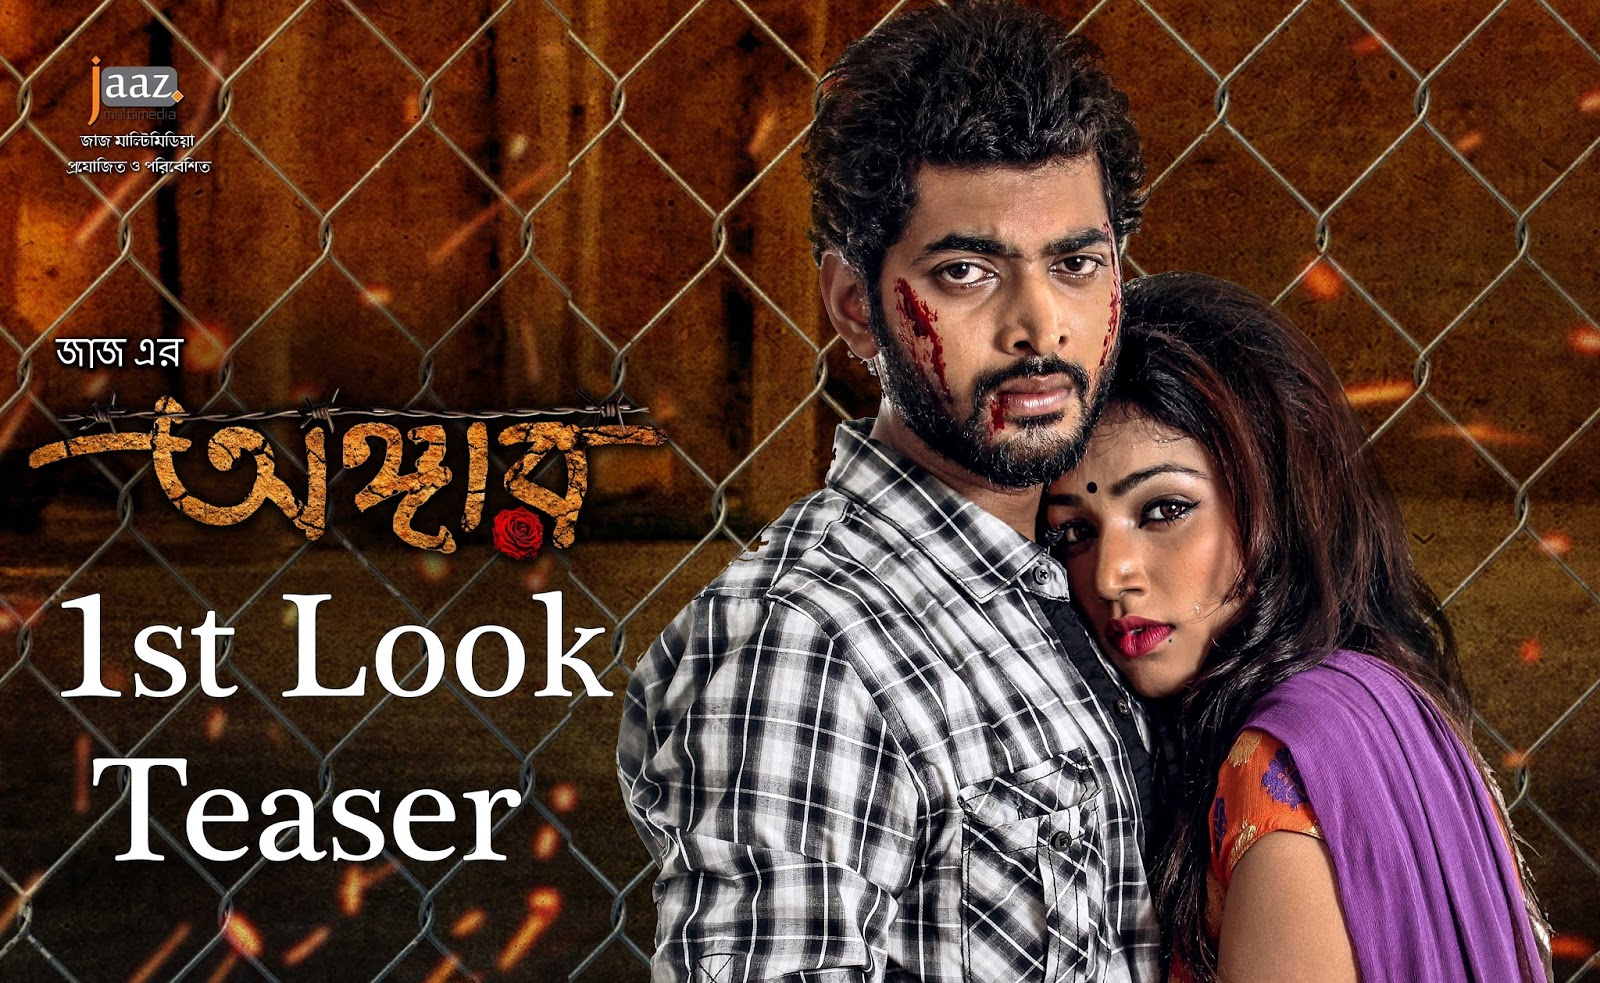 posto bengali movie free download torrent link